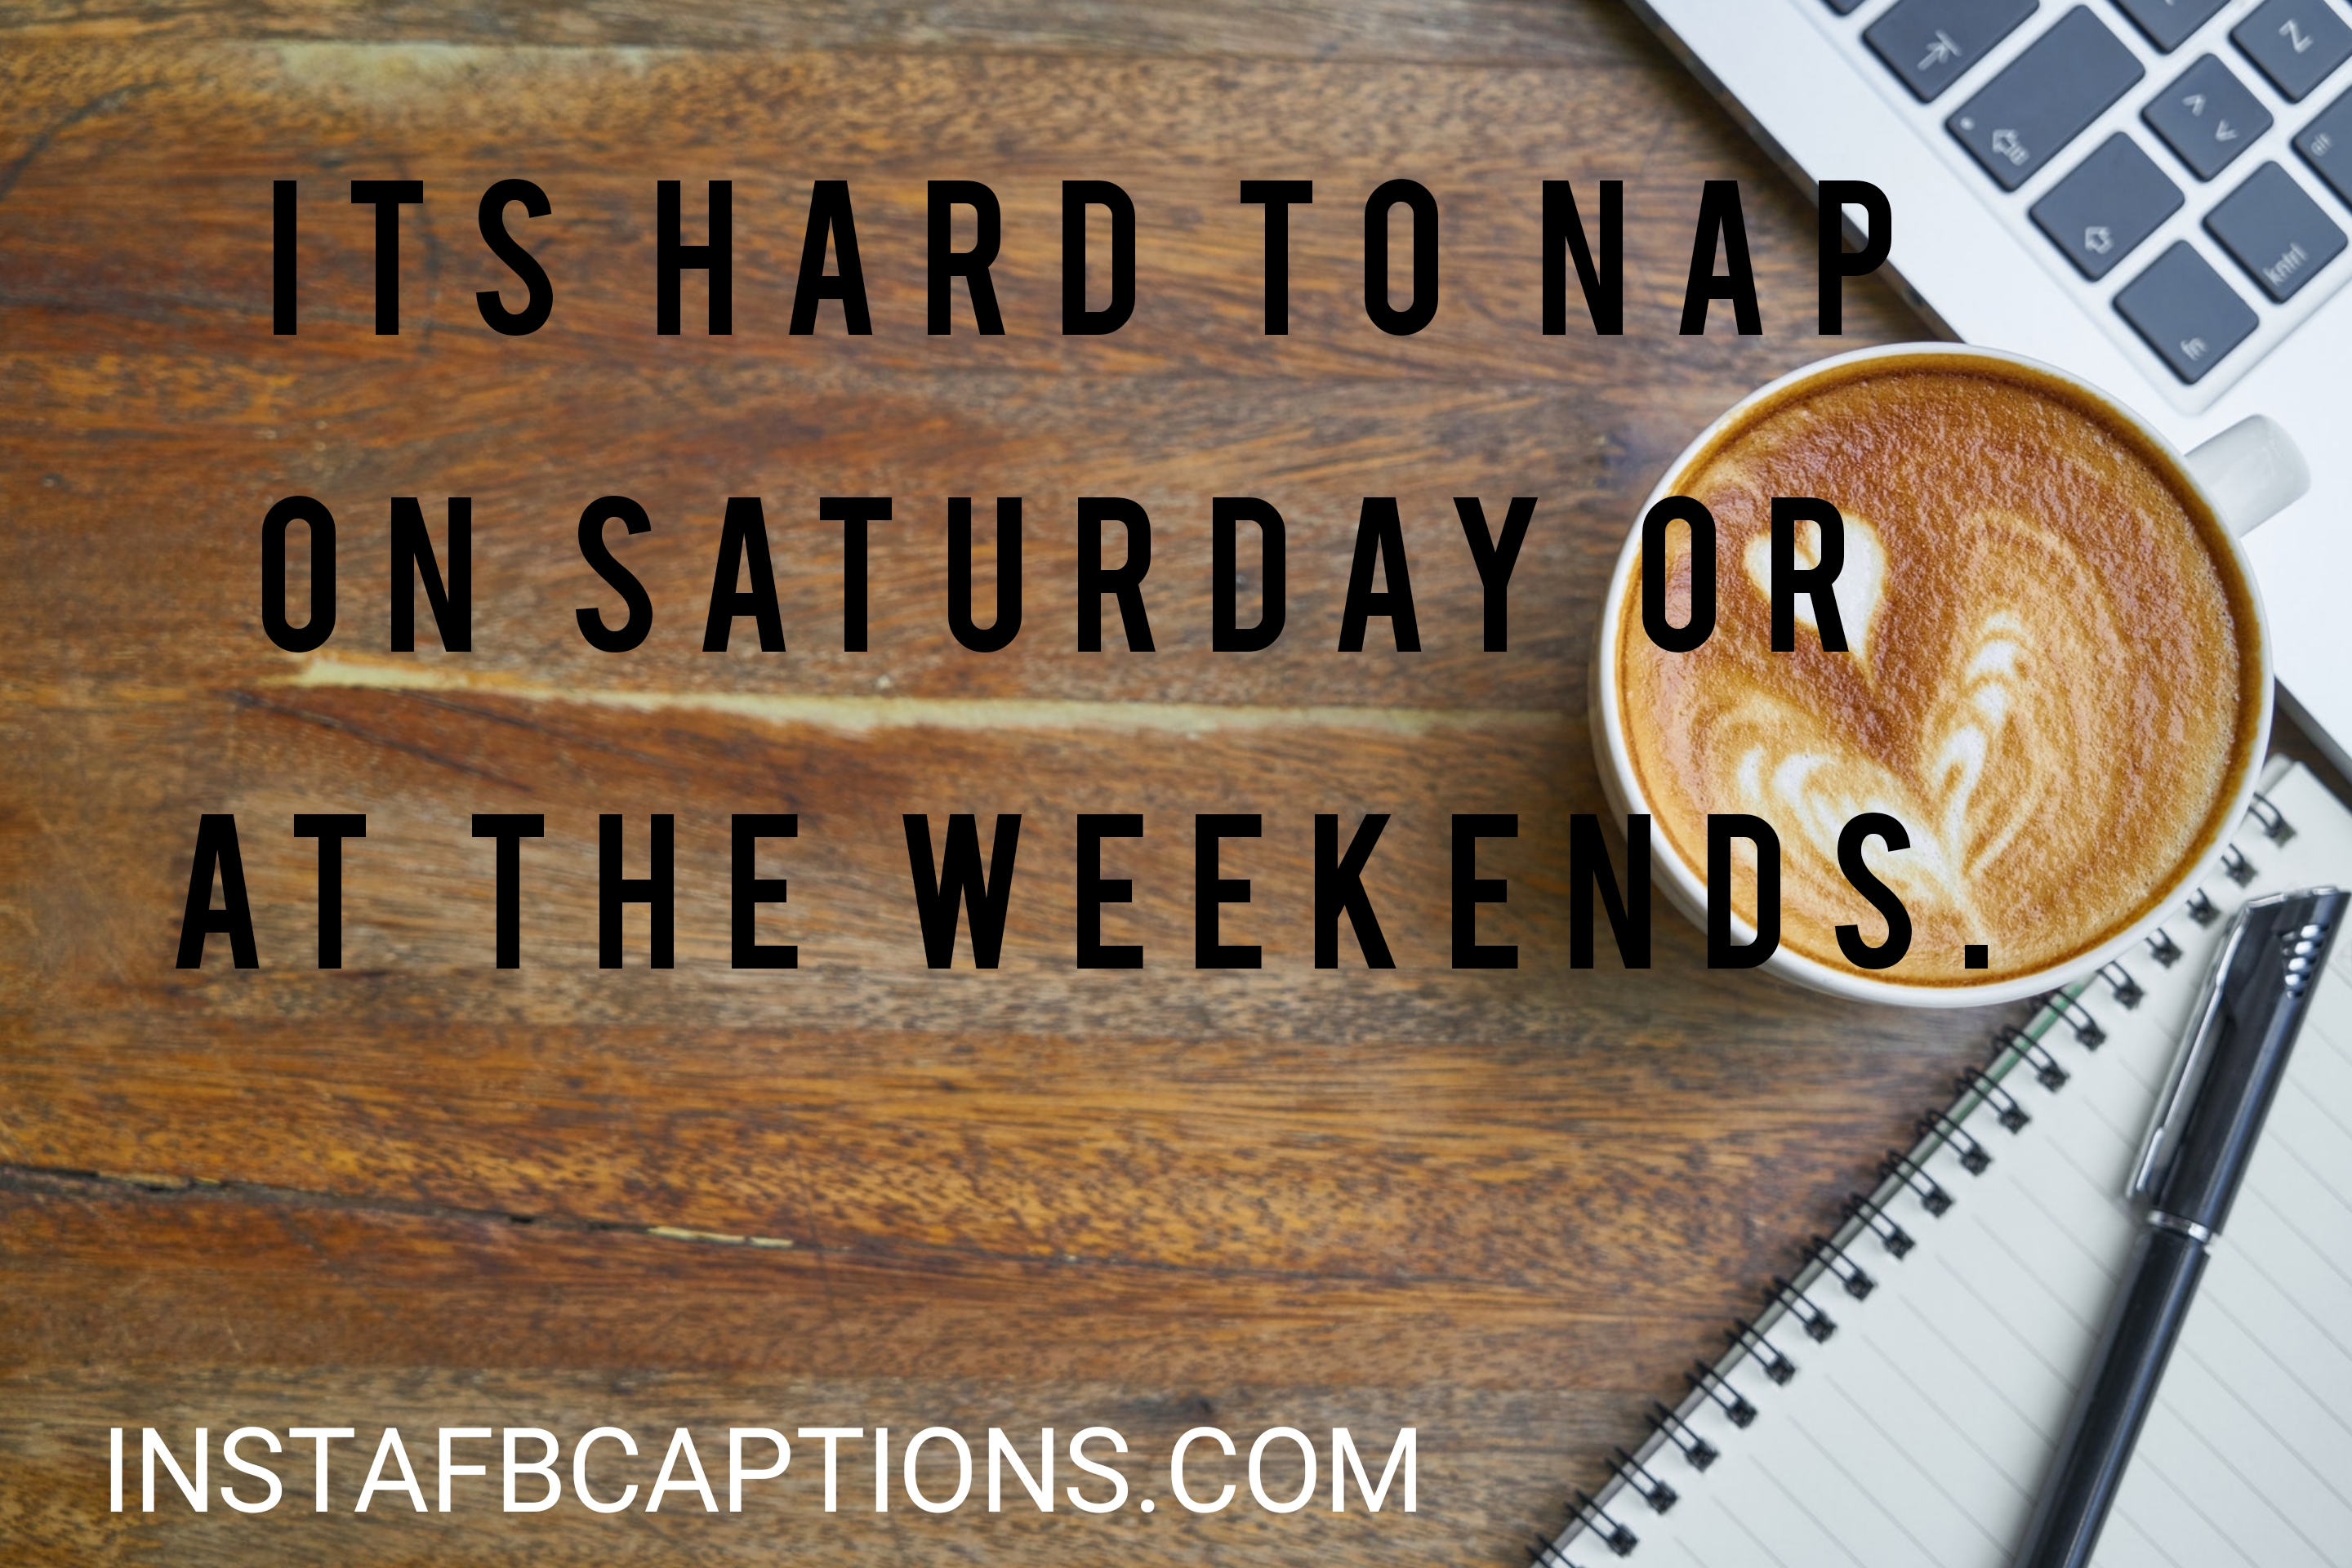 Its Hard To Nap On Saturday Or Atthe Weekends  - its hard to nap on saturday or atthe weekends - 500+ WEEKEND Instagram Captions 2021